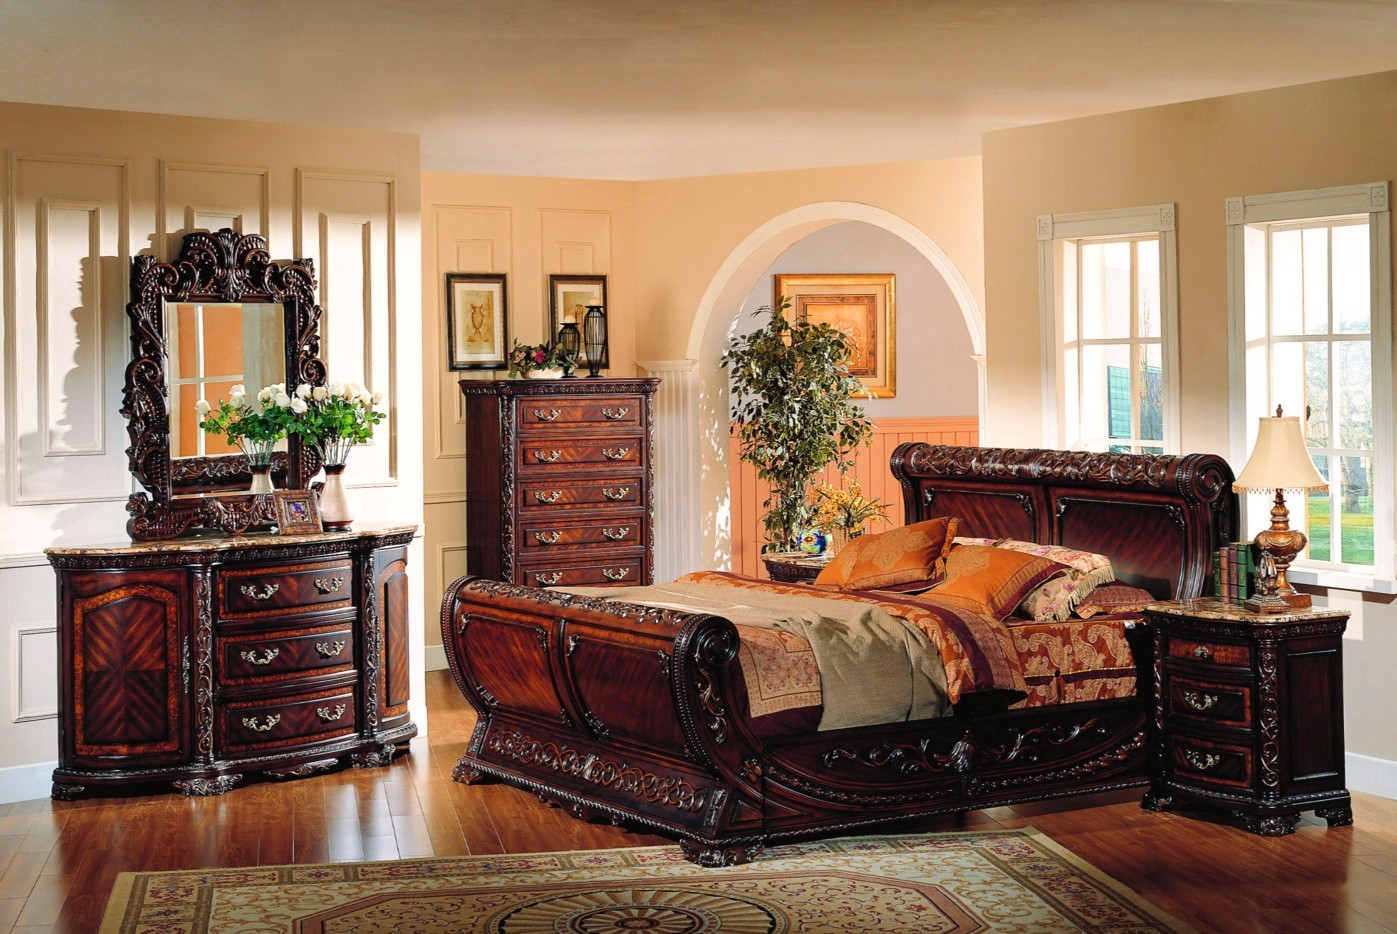 cannes sleigh bed traditional luxury bedroom furniture 12171 | cannes sleigh bed traditional luxury bedroom furniture collection 98